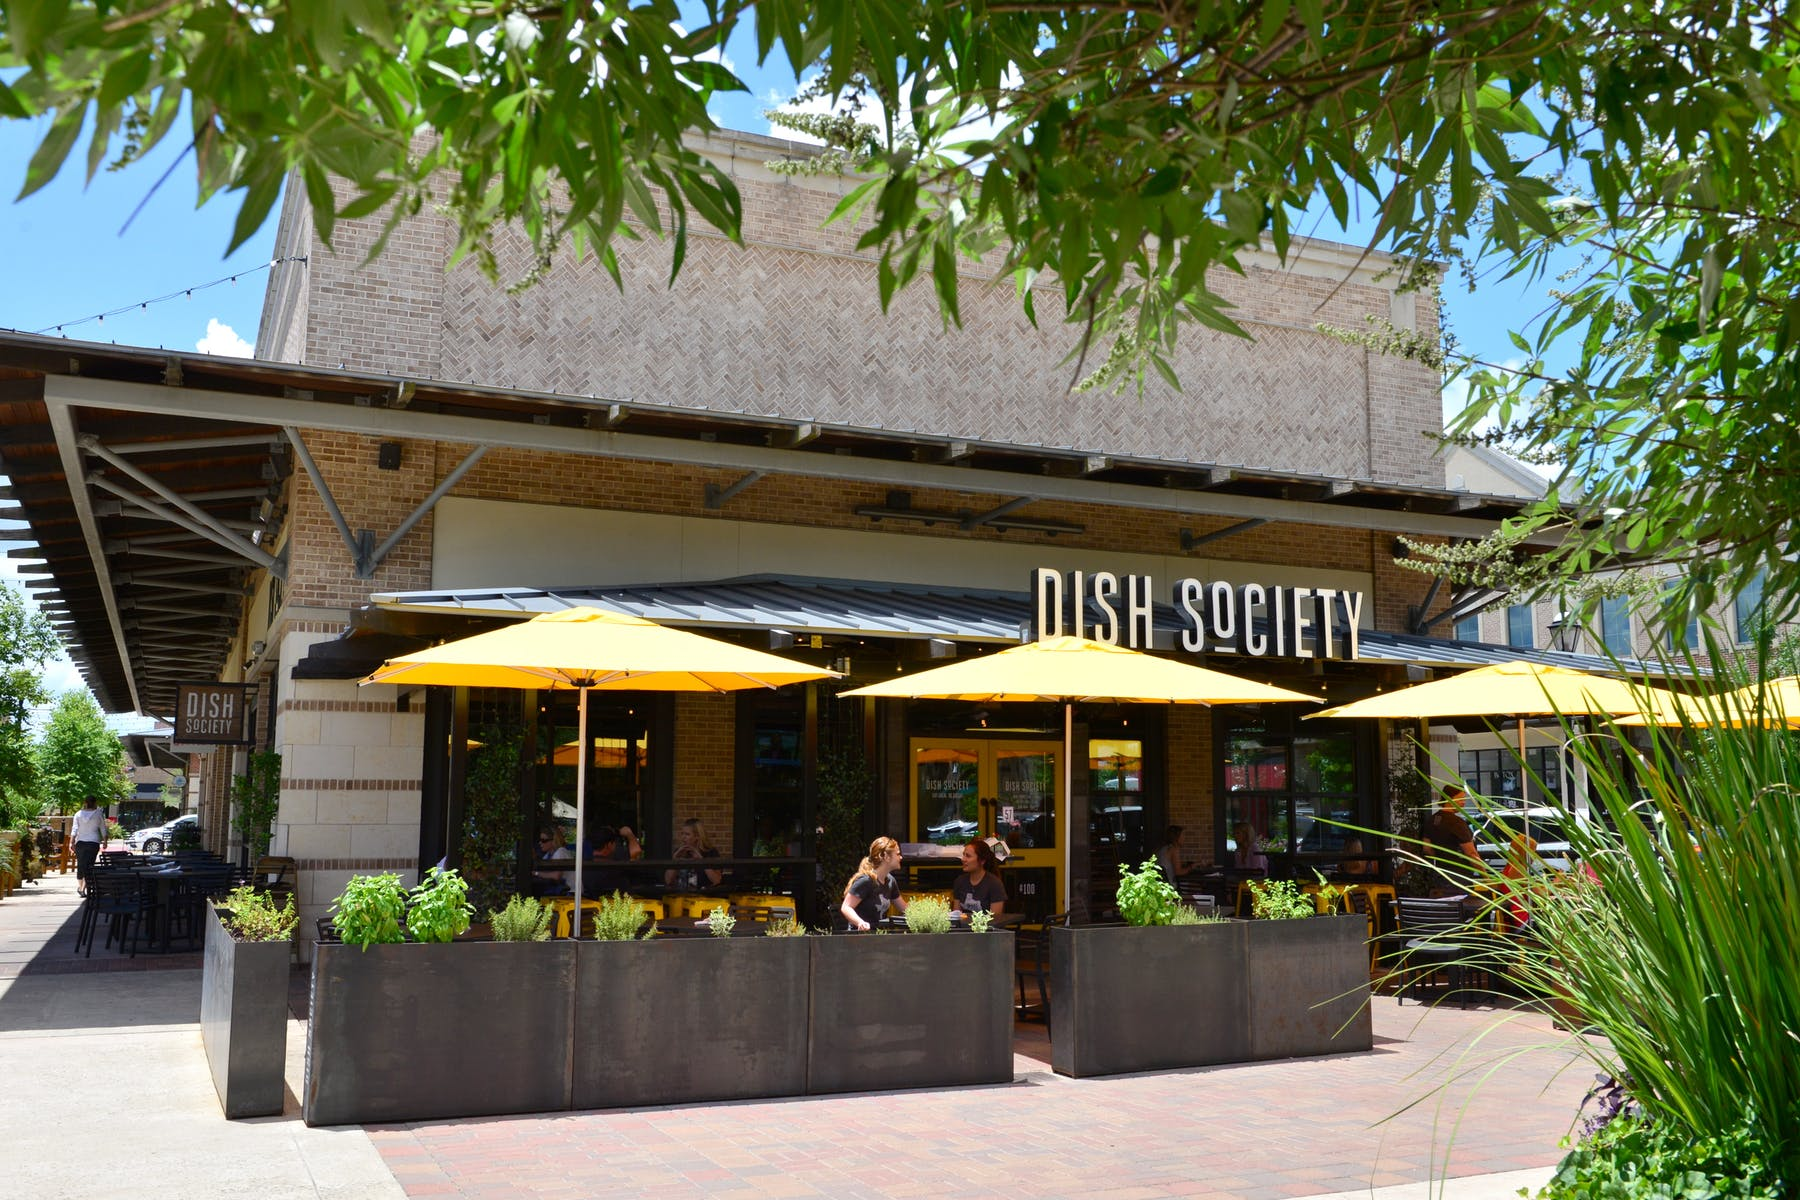 The Dish Society Katy Area location patio is available for locally sourced breakfast, lunch, brunch, and dinner.